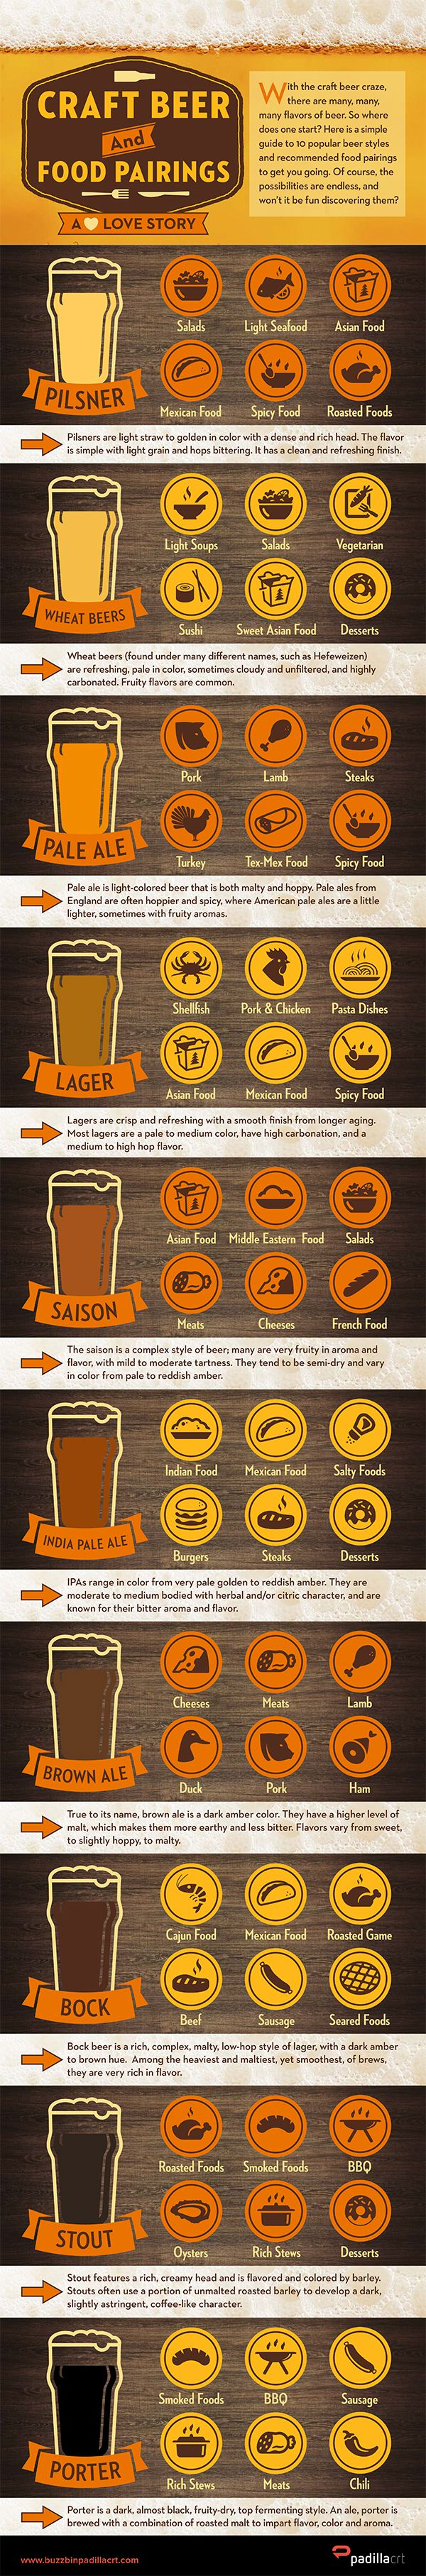 25+ best ideas about Craft beer on Pinterest | Beer brewing, Beer ...